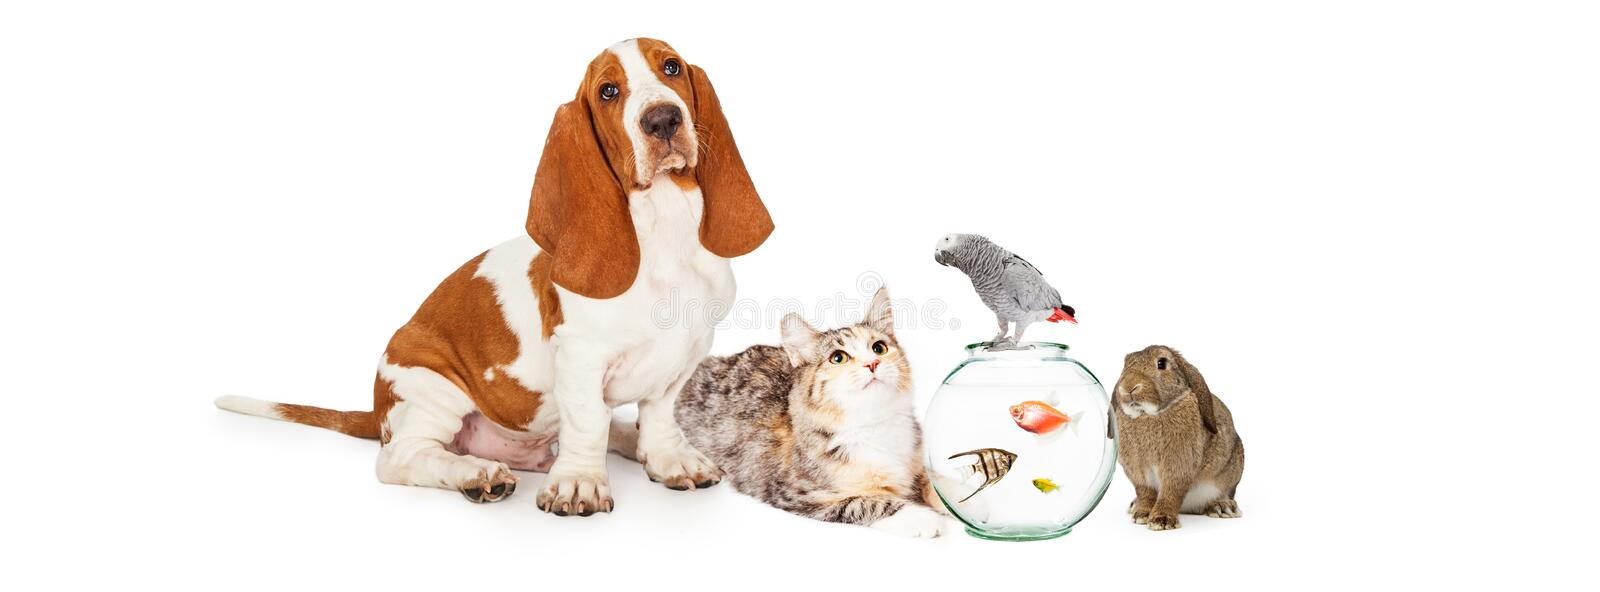 Collage of Domestic Pets Together. Group of domestic pets together including a dog, cat, fish, bird and bunny royalty free stock photo